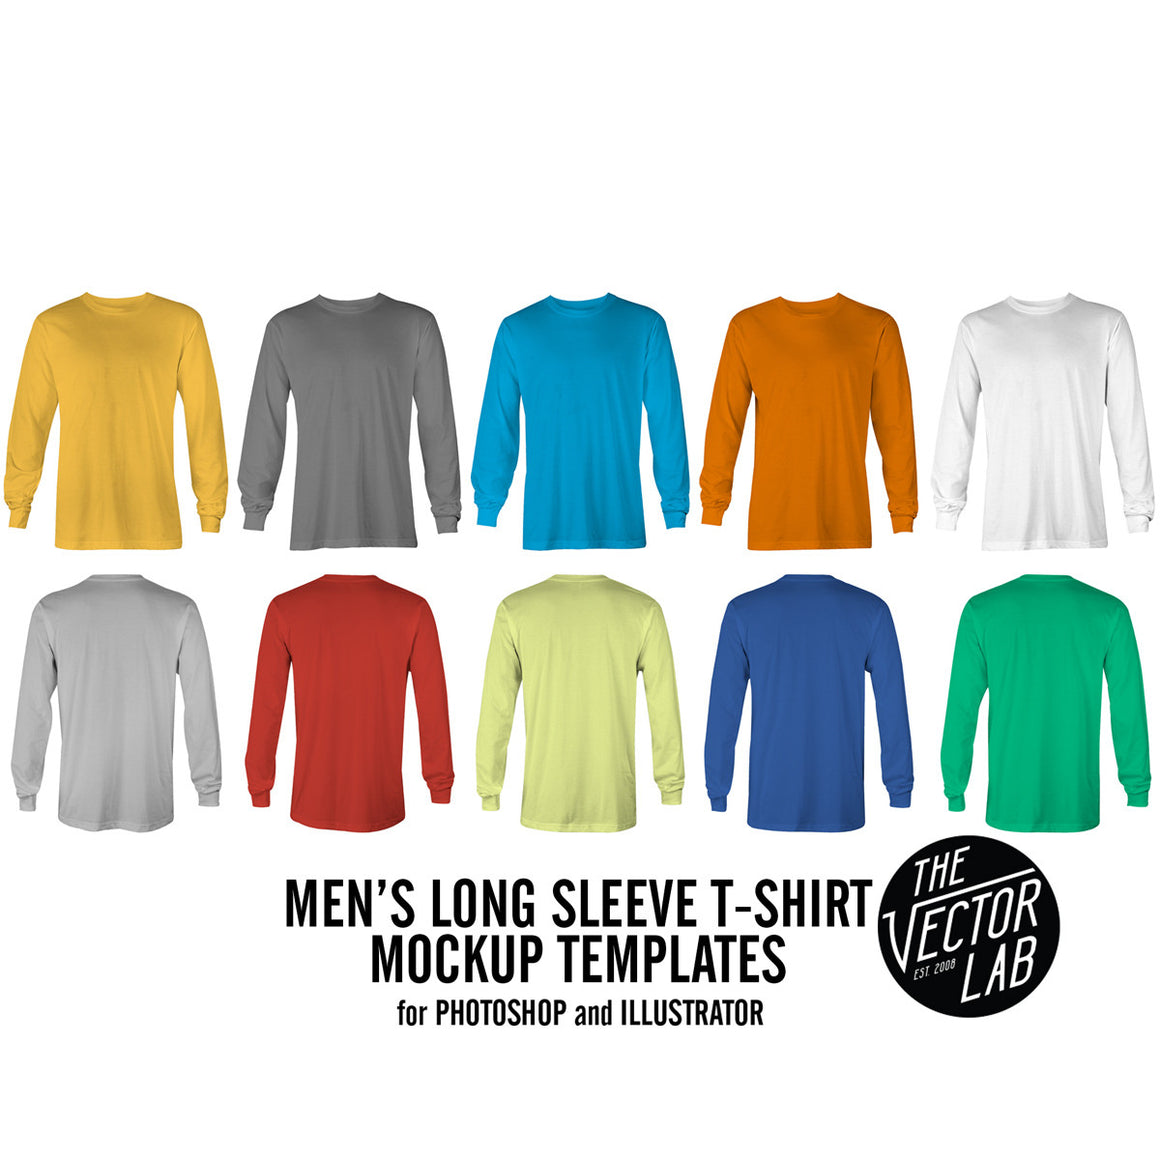 Men's Long Sleeve Mockup Templates Photoshop & Illustrator